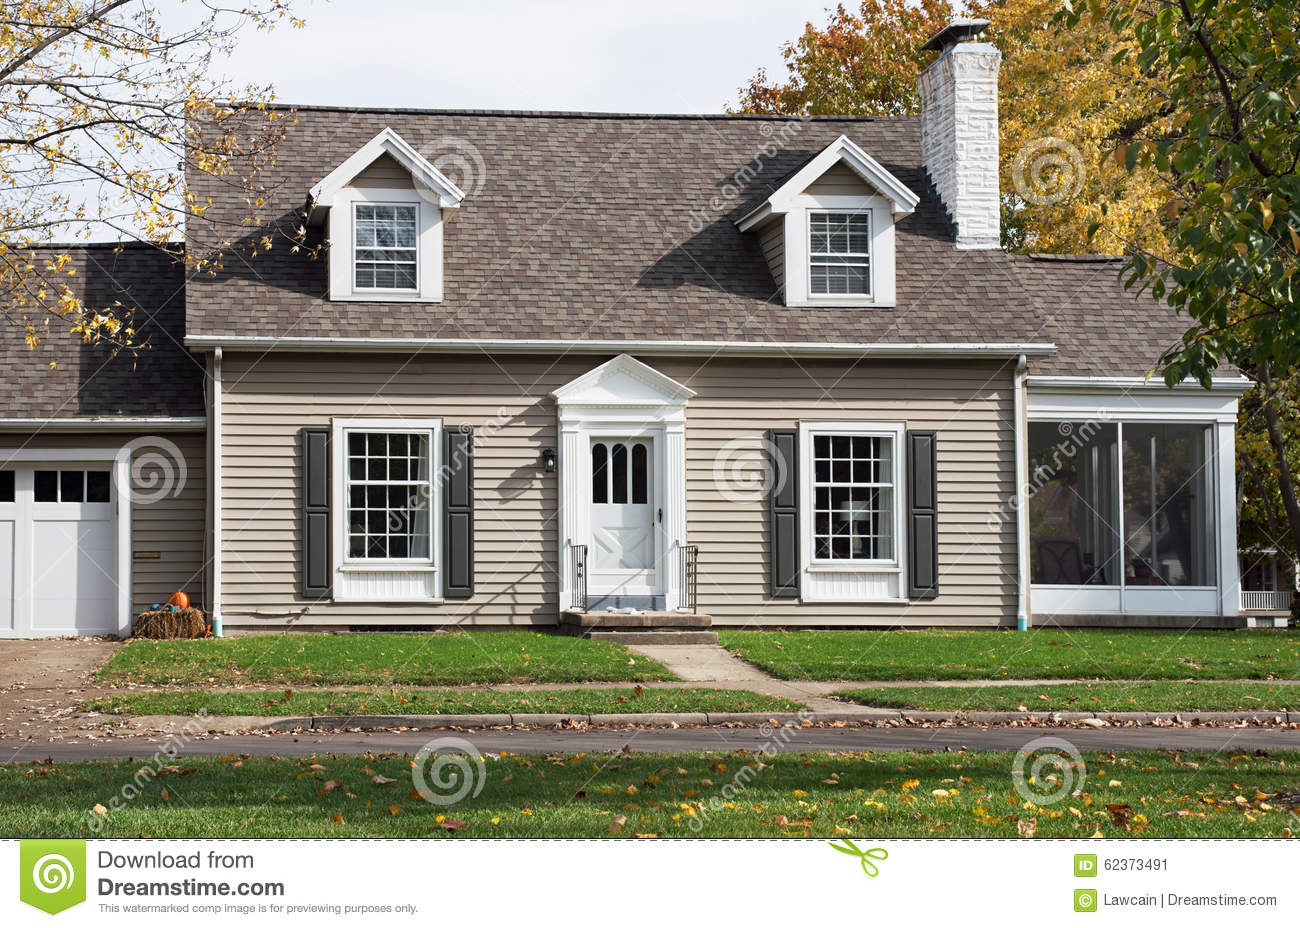 Cape Cod House With Screened In Porch Stock Photo Image: portico on cape cod house